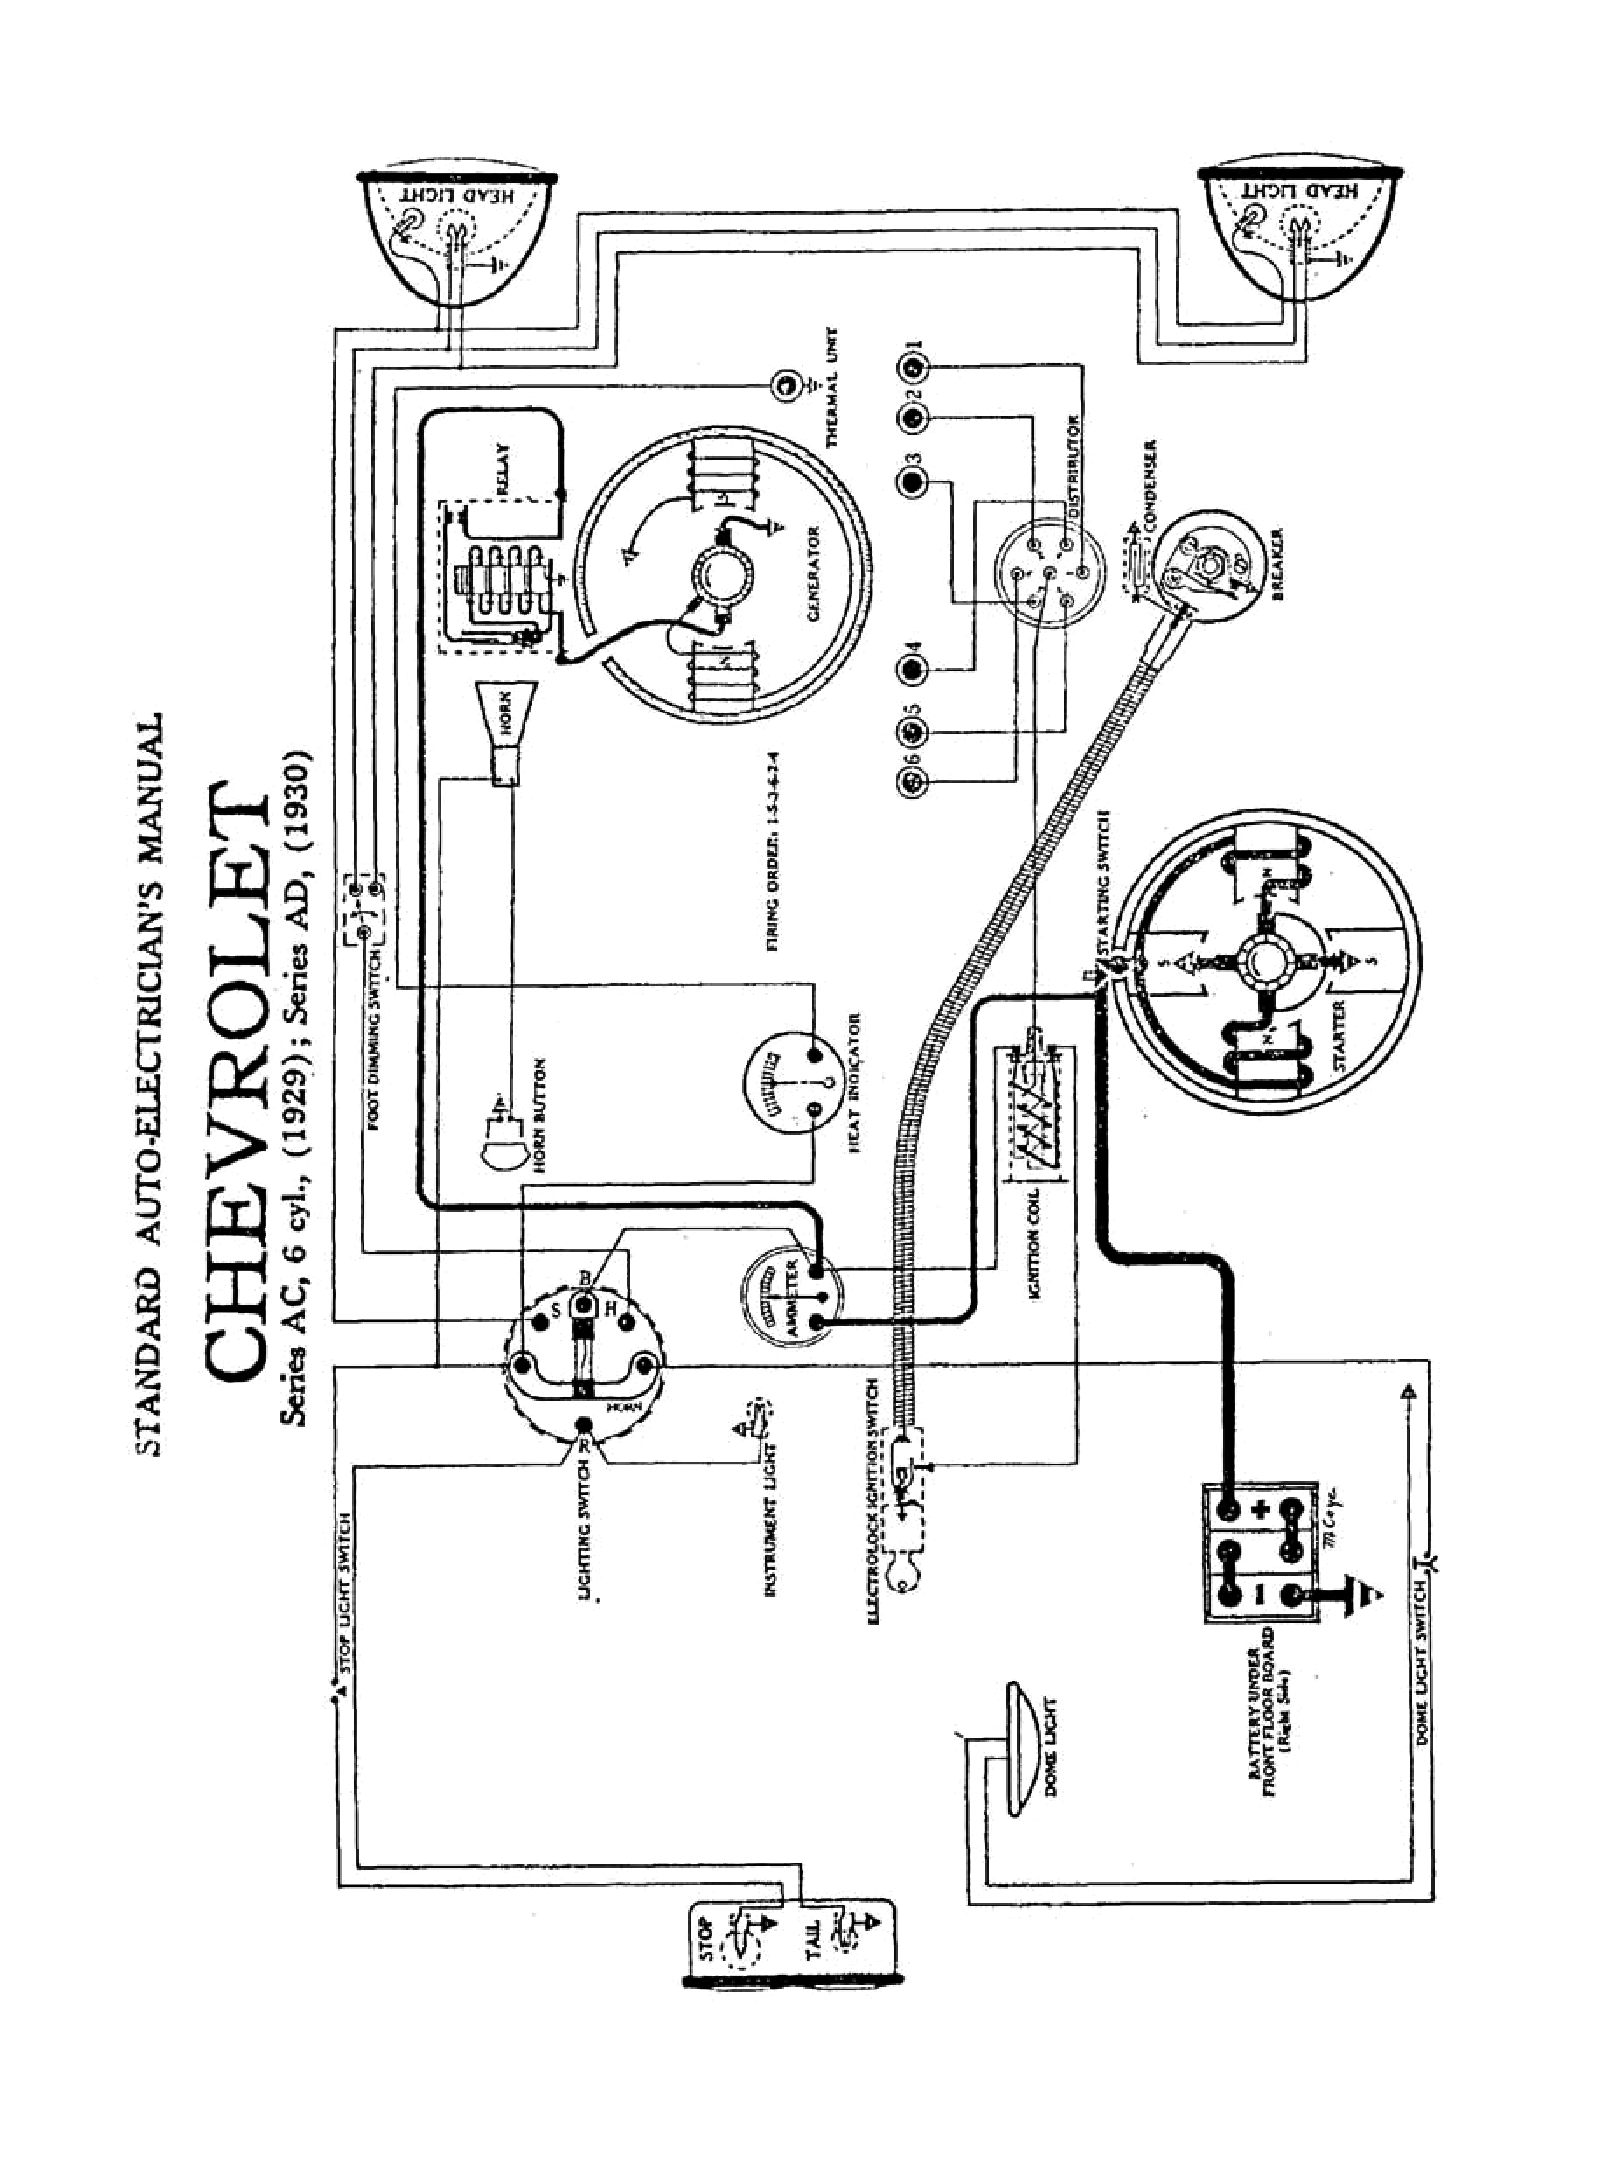 2930wiring chevy wiring diagrams model a ford generator wiring diagram at bayanpartner.co